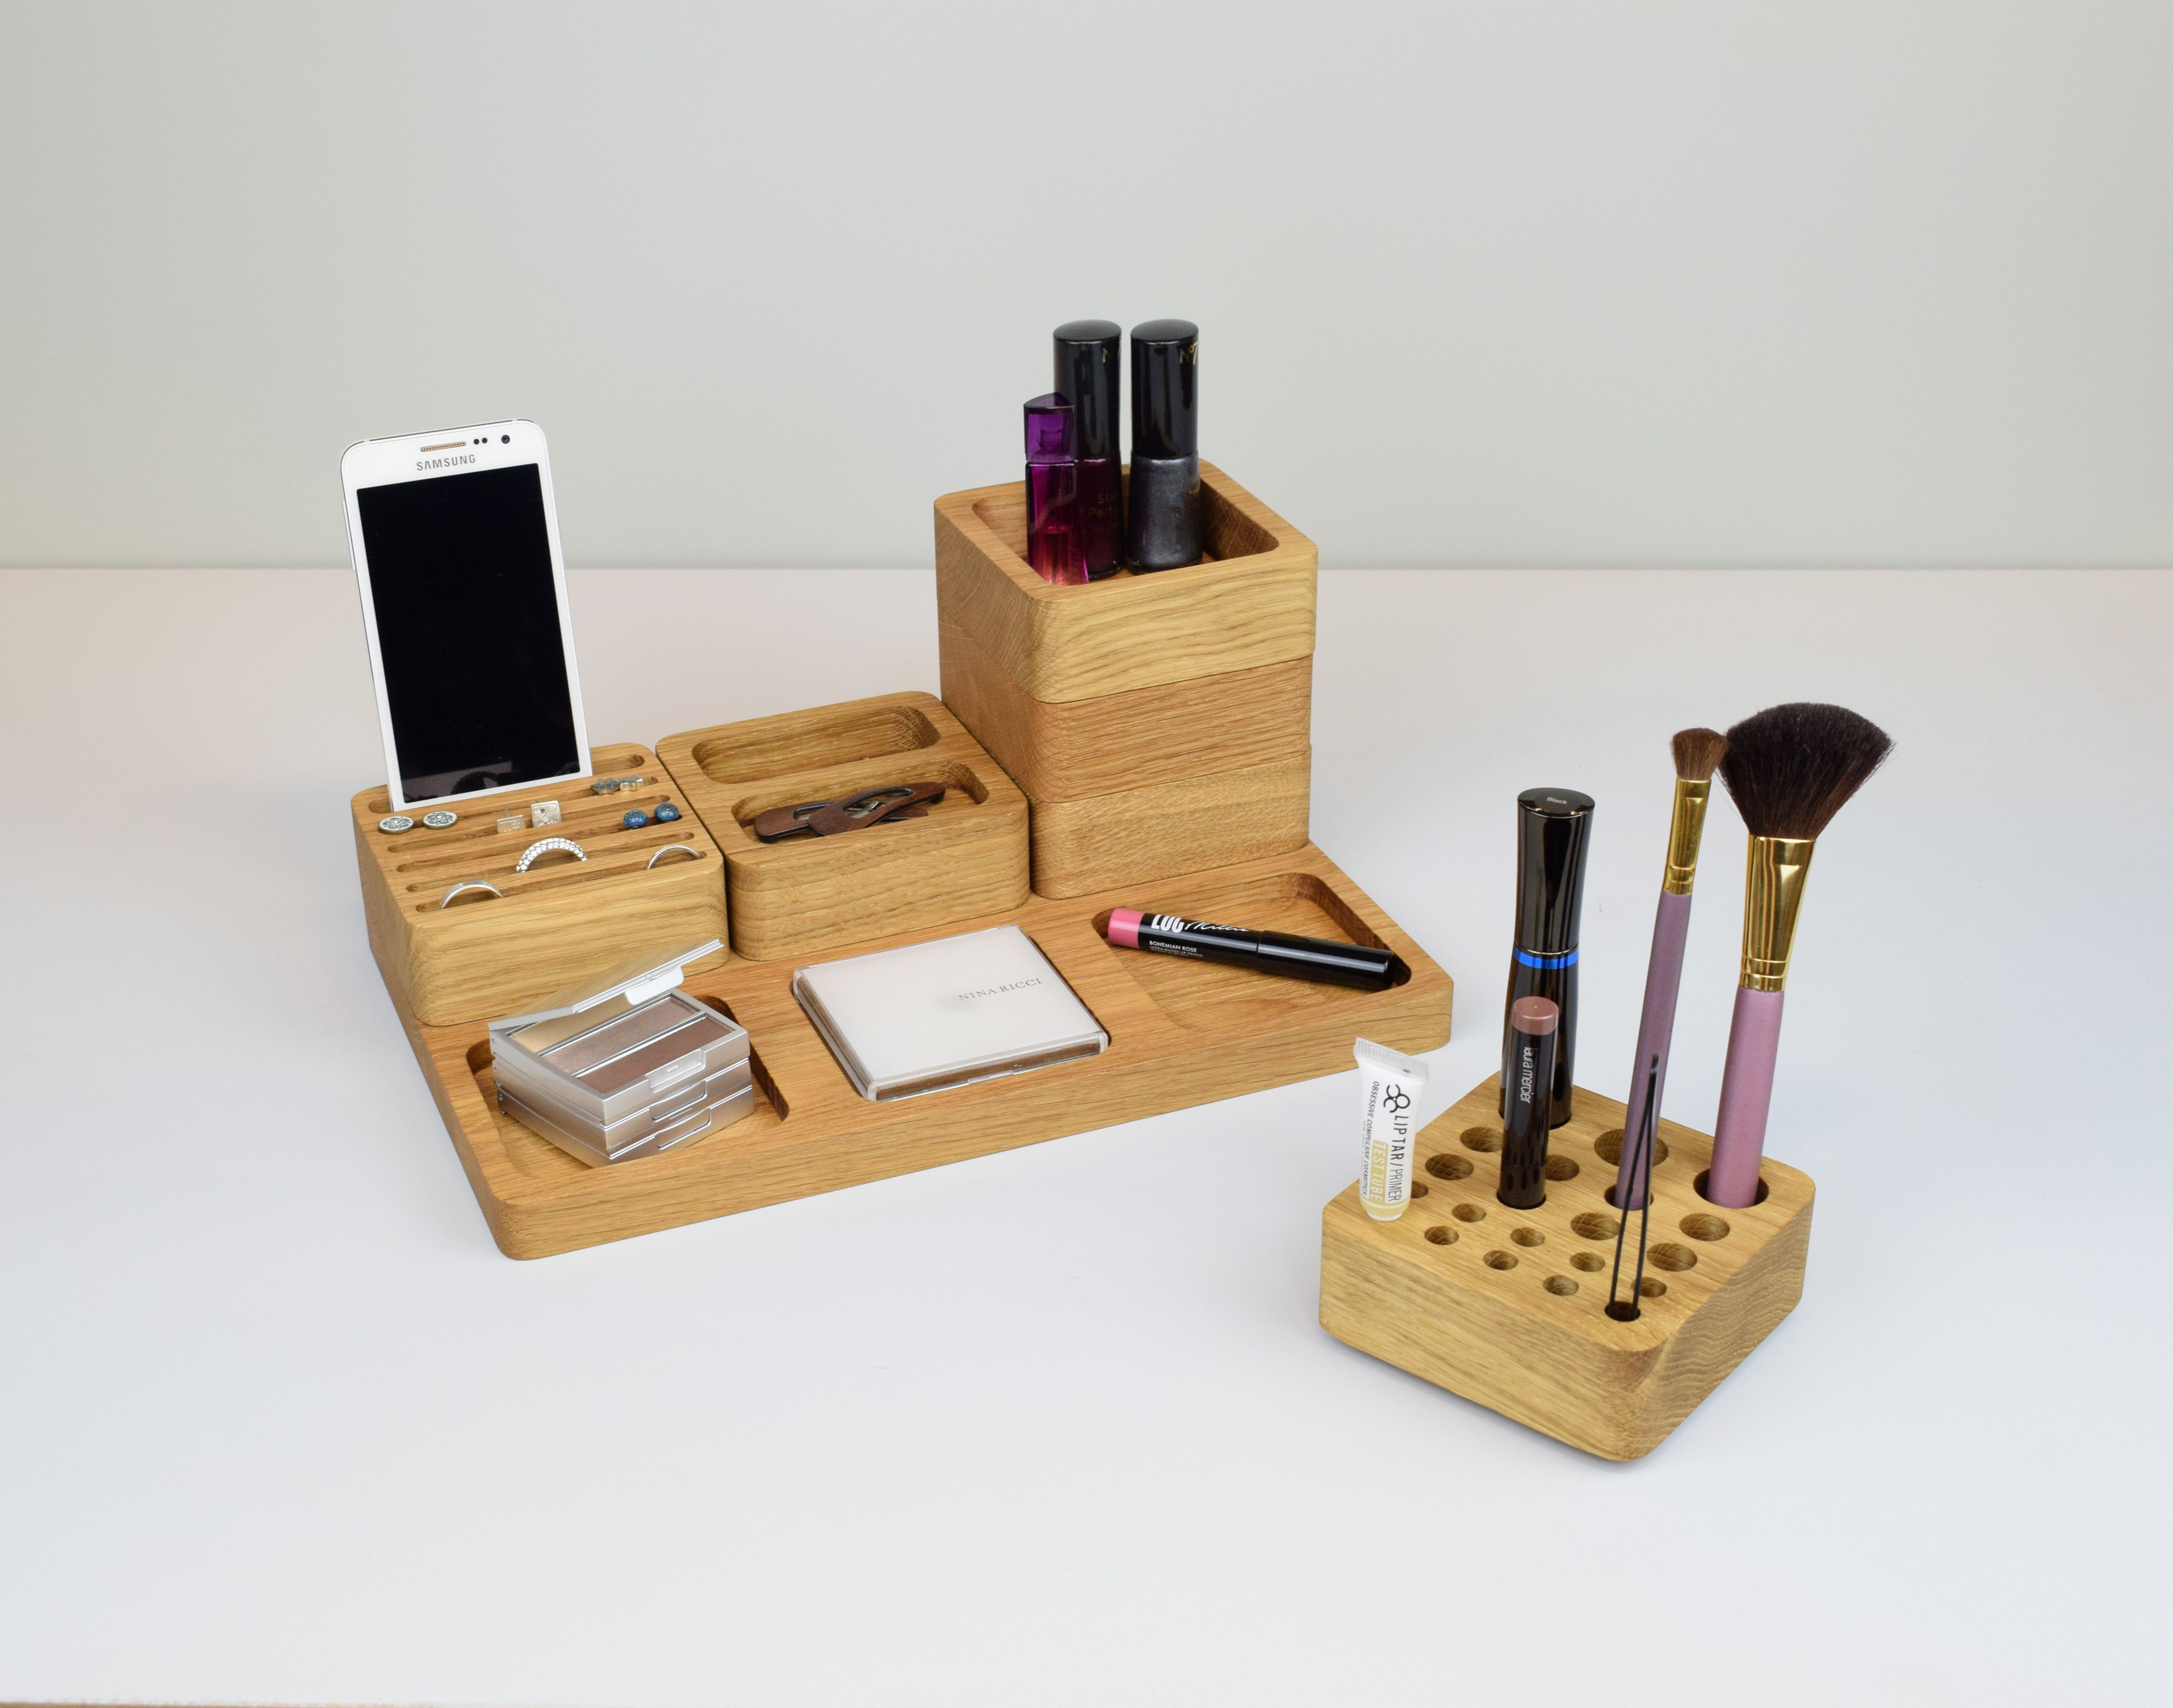 Large Beauty Station Jewelry Storage Makeup Brush Holder - Cosmetic makeup organizer wood countertop organizer by lessandmore